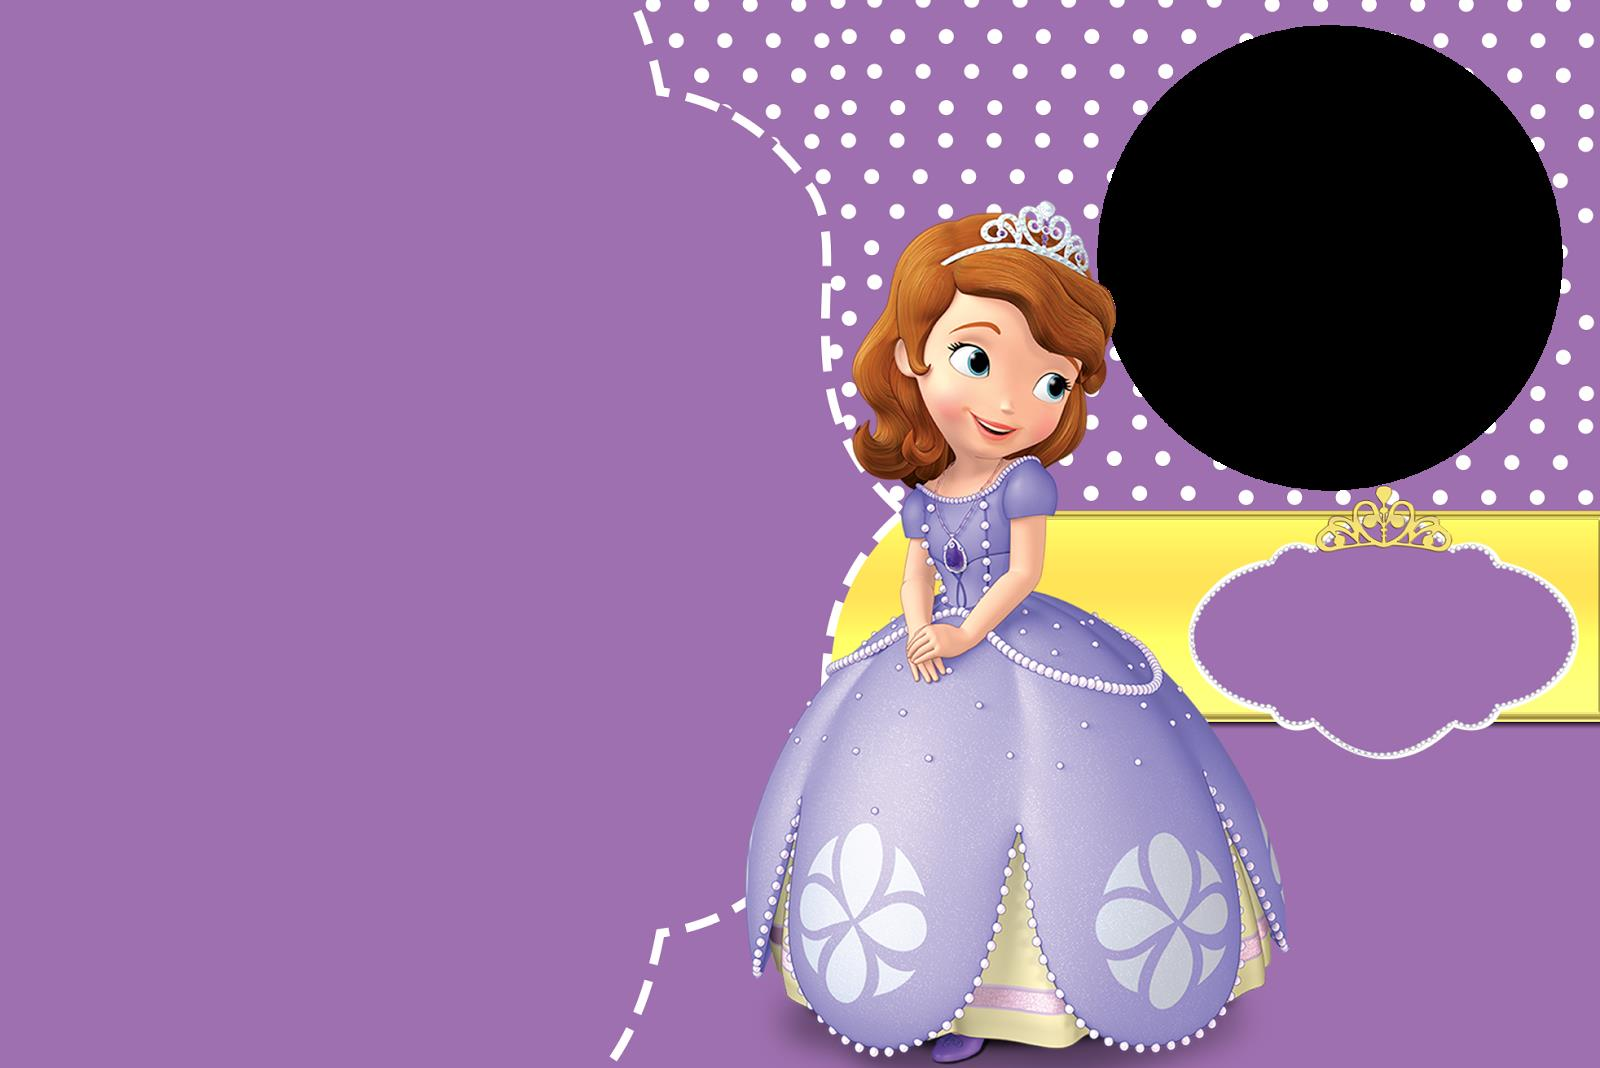 sofia the first birthday wallpaper ; sofia-the-first-birthday-background